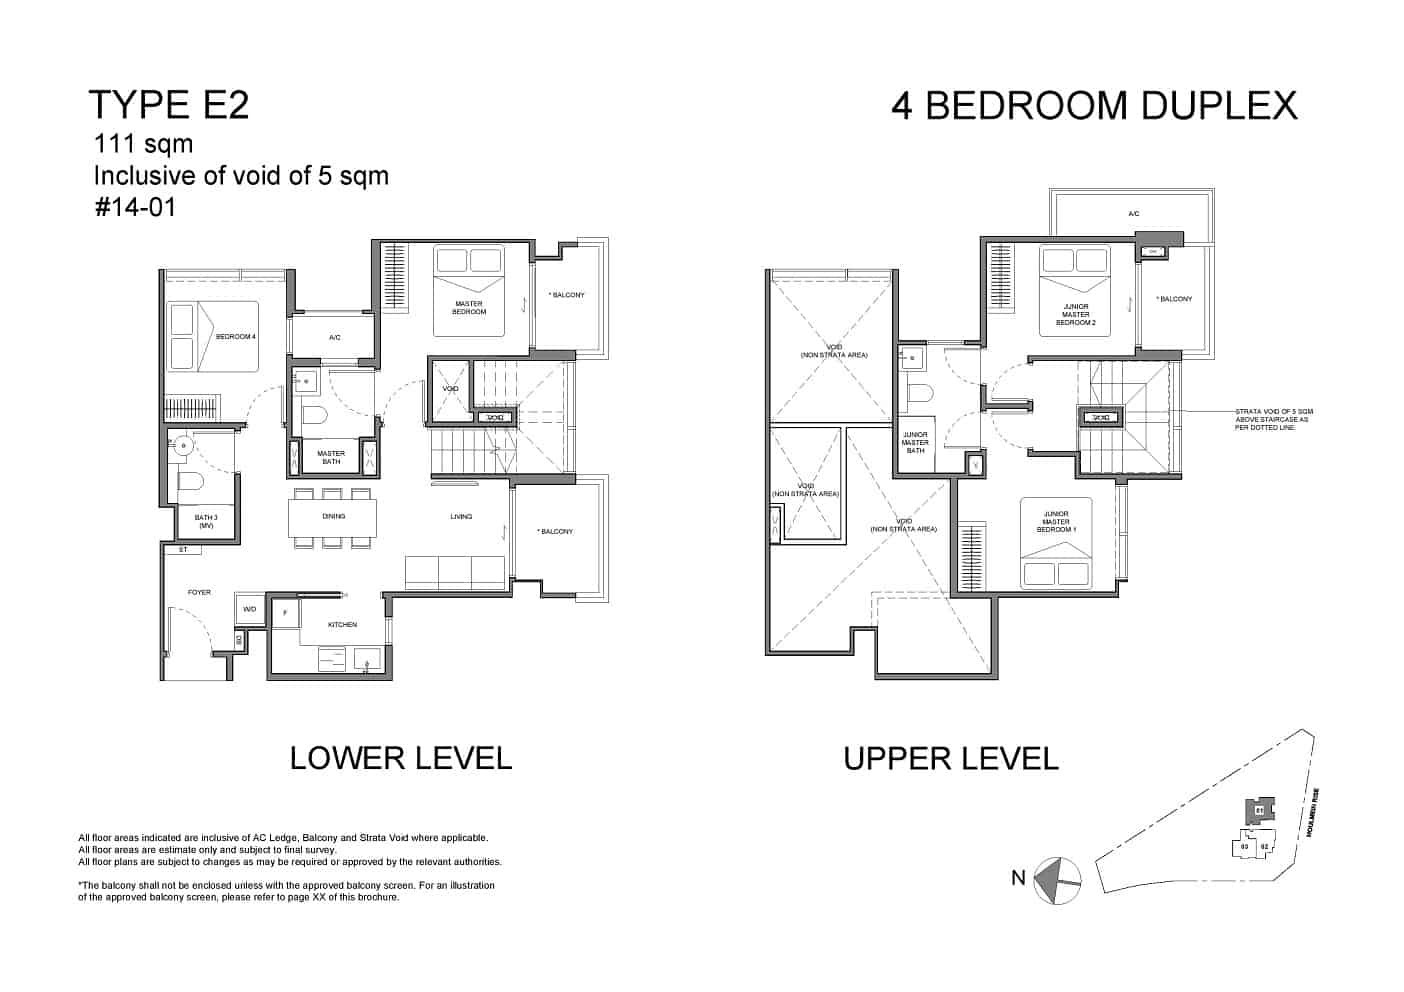 Neu at Novena 4-bedroom duplex Type E2